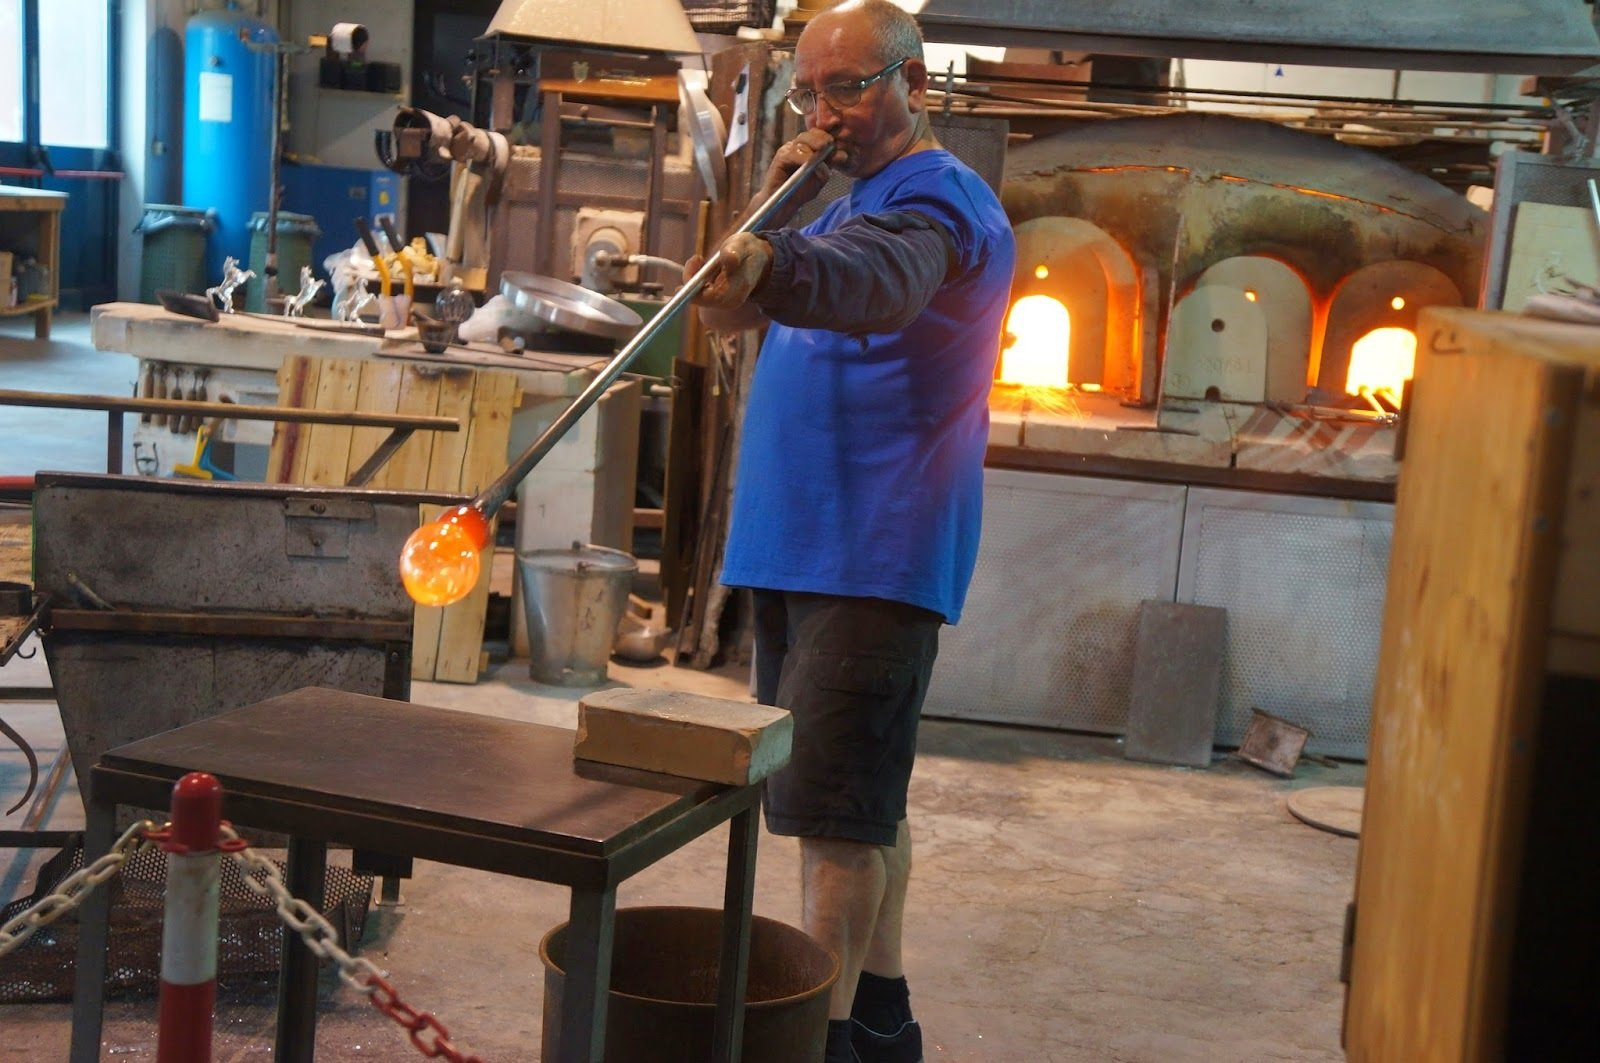 Glass blowing in one of the many glass blowing factories on Murano